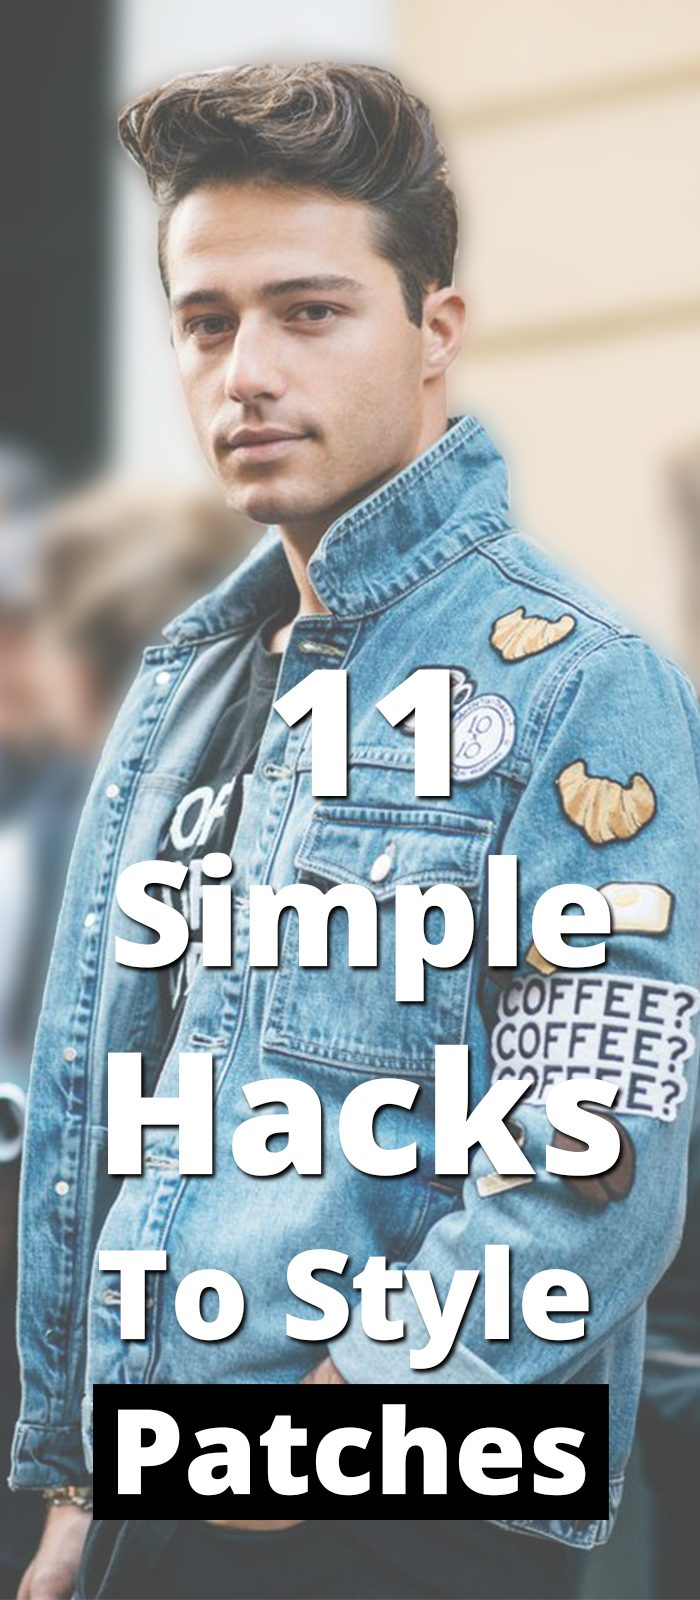 11-Simple-Hacks-To-Style-Patches